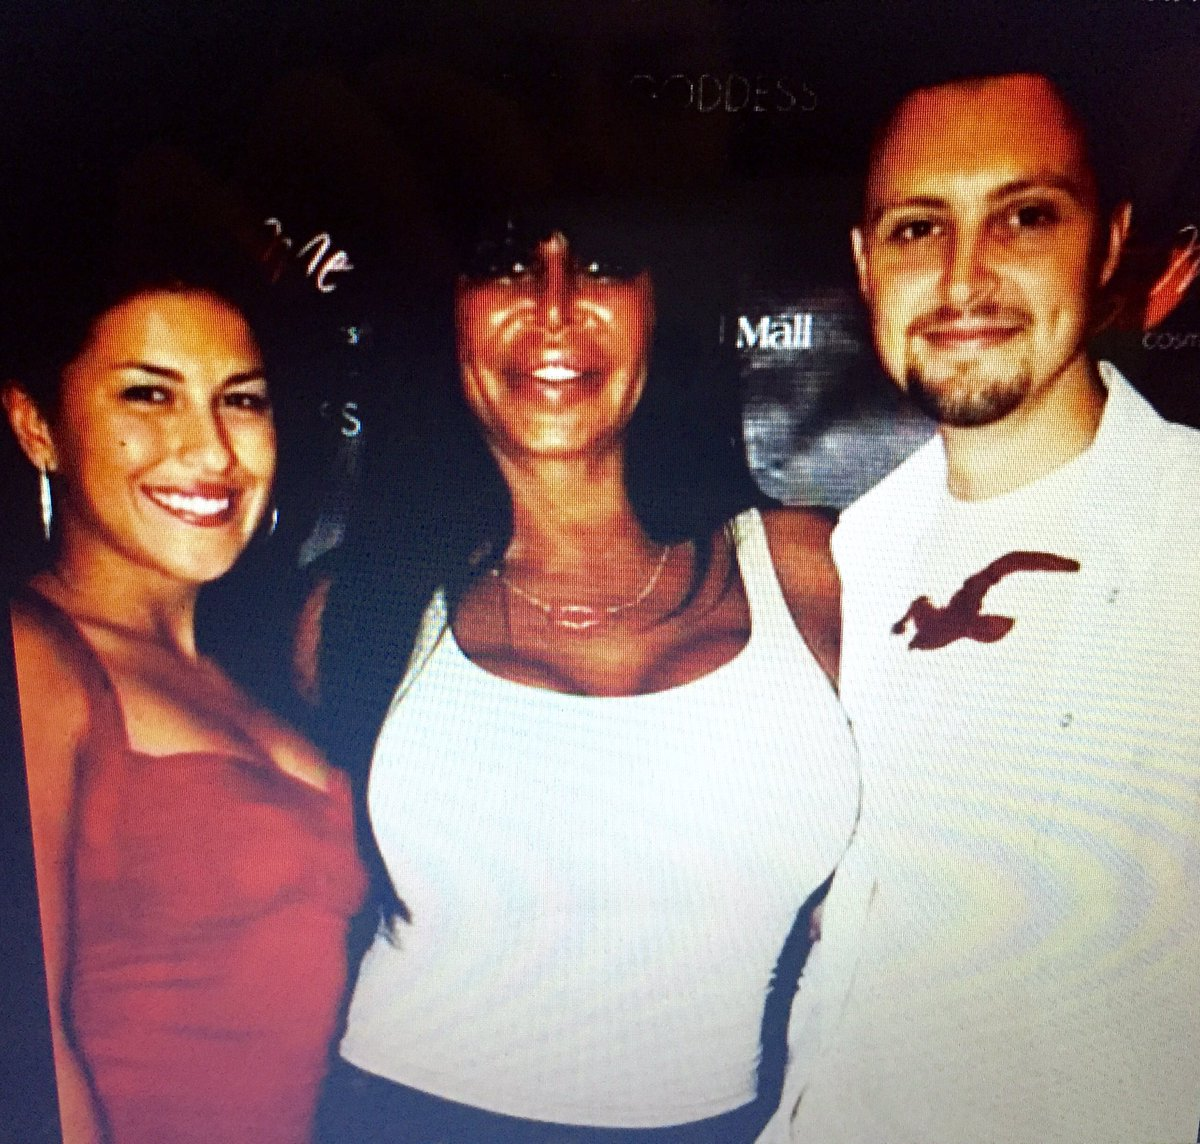 Found this classic of @biggangVH1 & @VinnieMedugno @ @DritaDavanzo event!Going to miss watching #Mobwives weds nites https://t.co/ZQTIAy3uS4